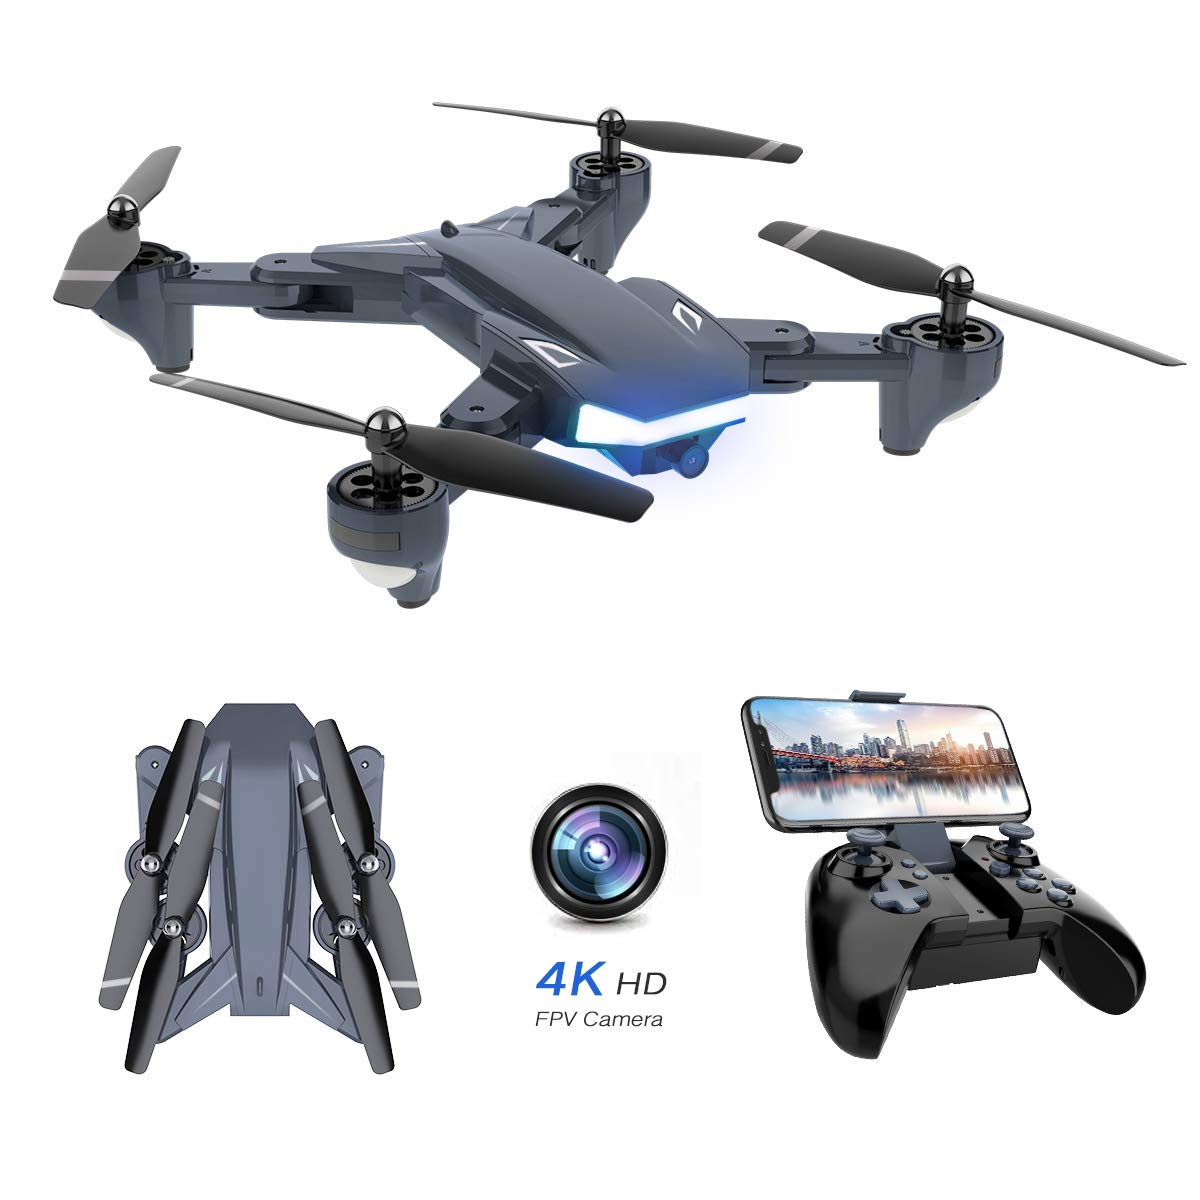 WiFi FPV Drone, Supkiir Foldable RC Quadcopter with 4K HD Camera, Portable Aircraft Toy for Beginners with Gravity Control, Image Tracking, Custom Flight Path, Gesture Control by Supkiir